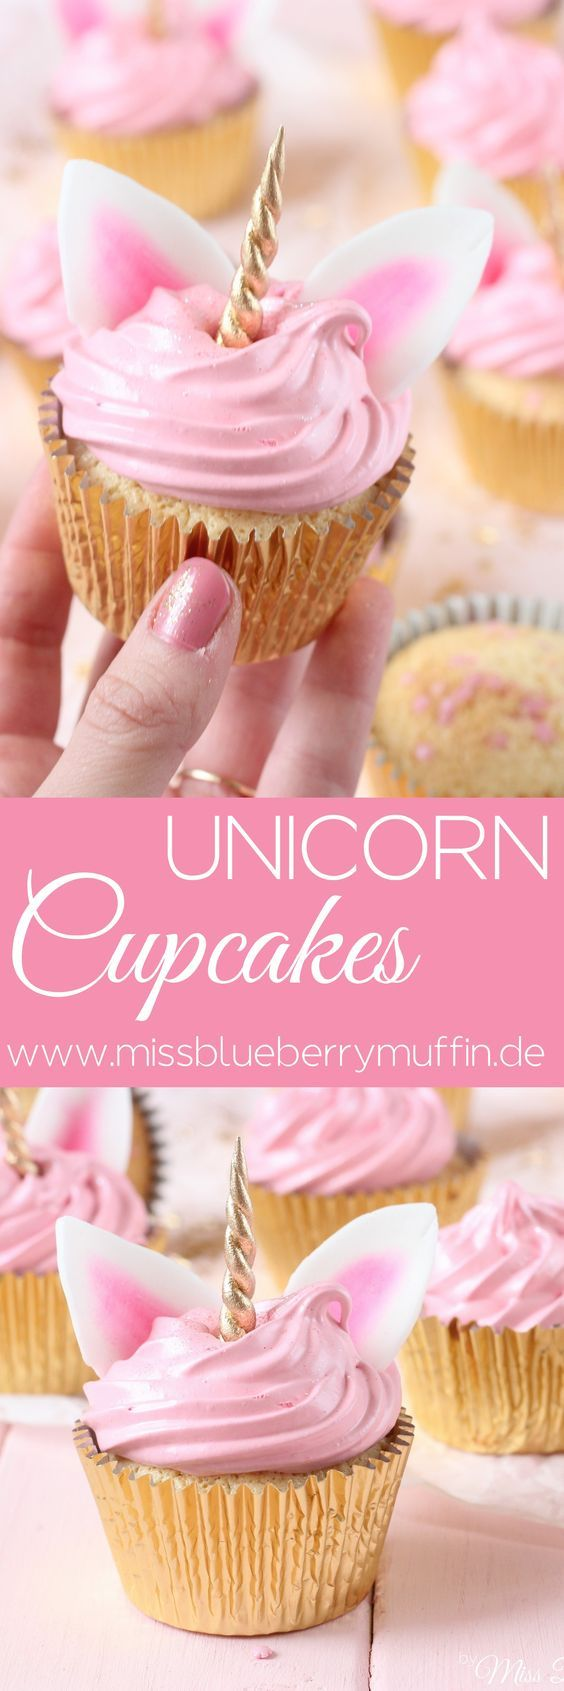 Zauberhafte Einhorn Cupcakes mit Marshmallow-Creme // Cute Unicorn Cupcakes with Seven Minute Frosting ♥